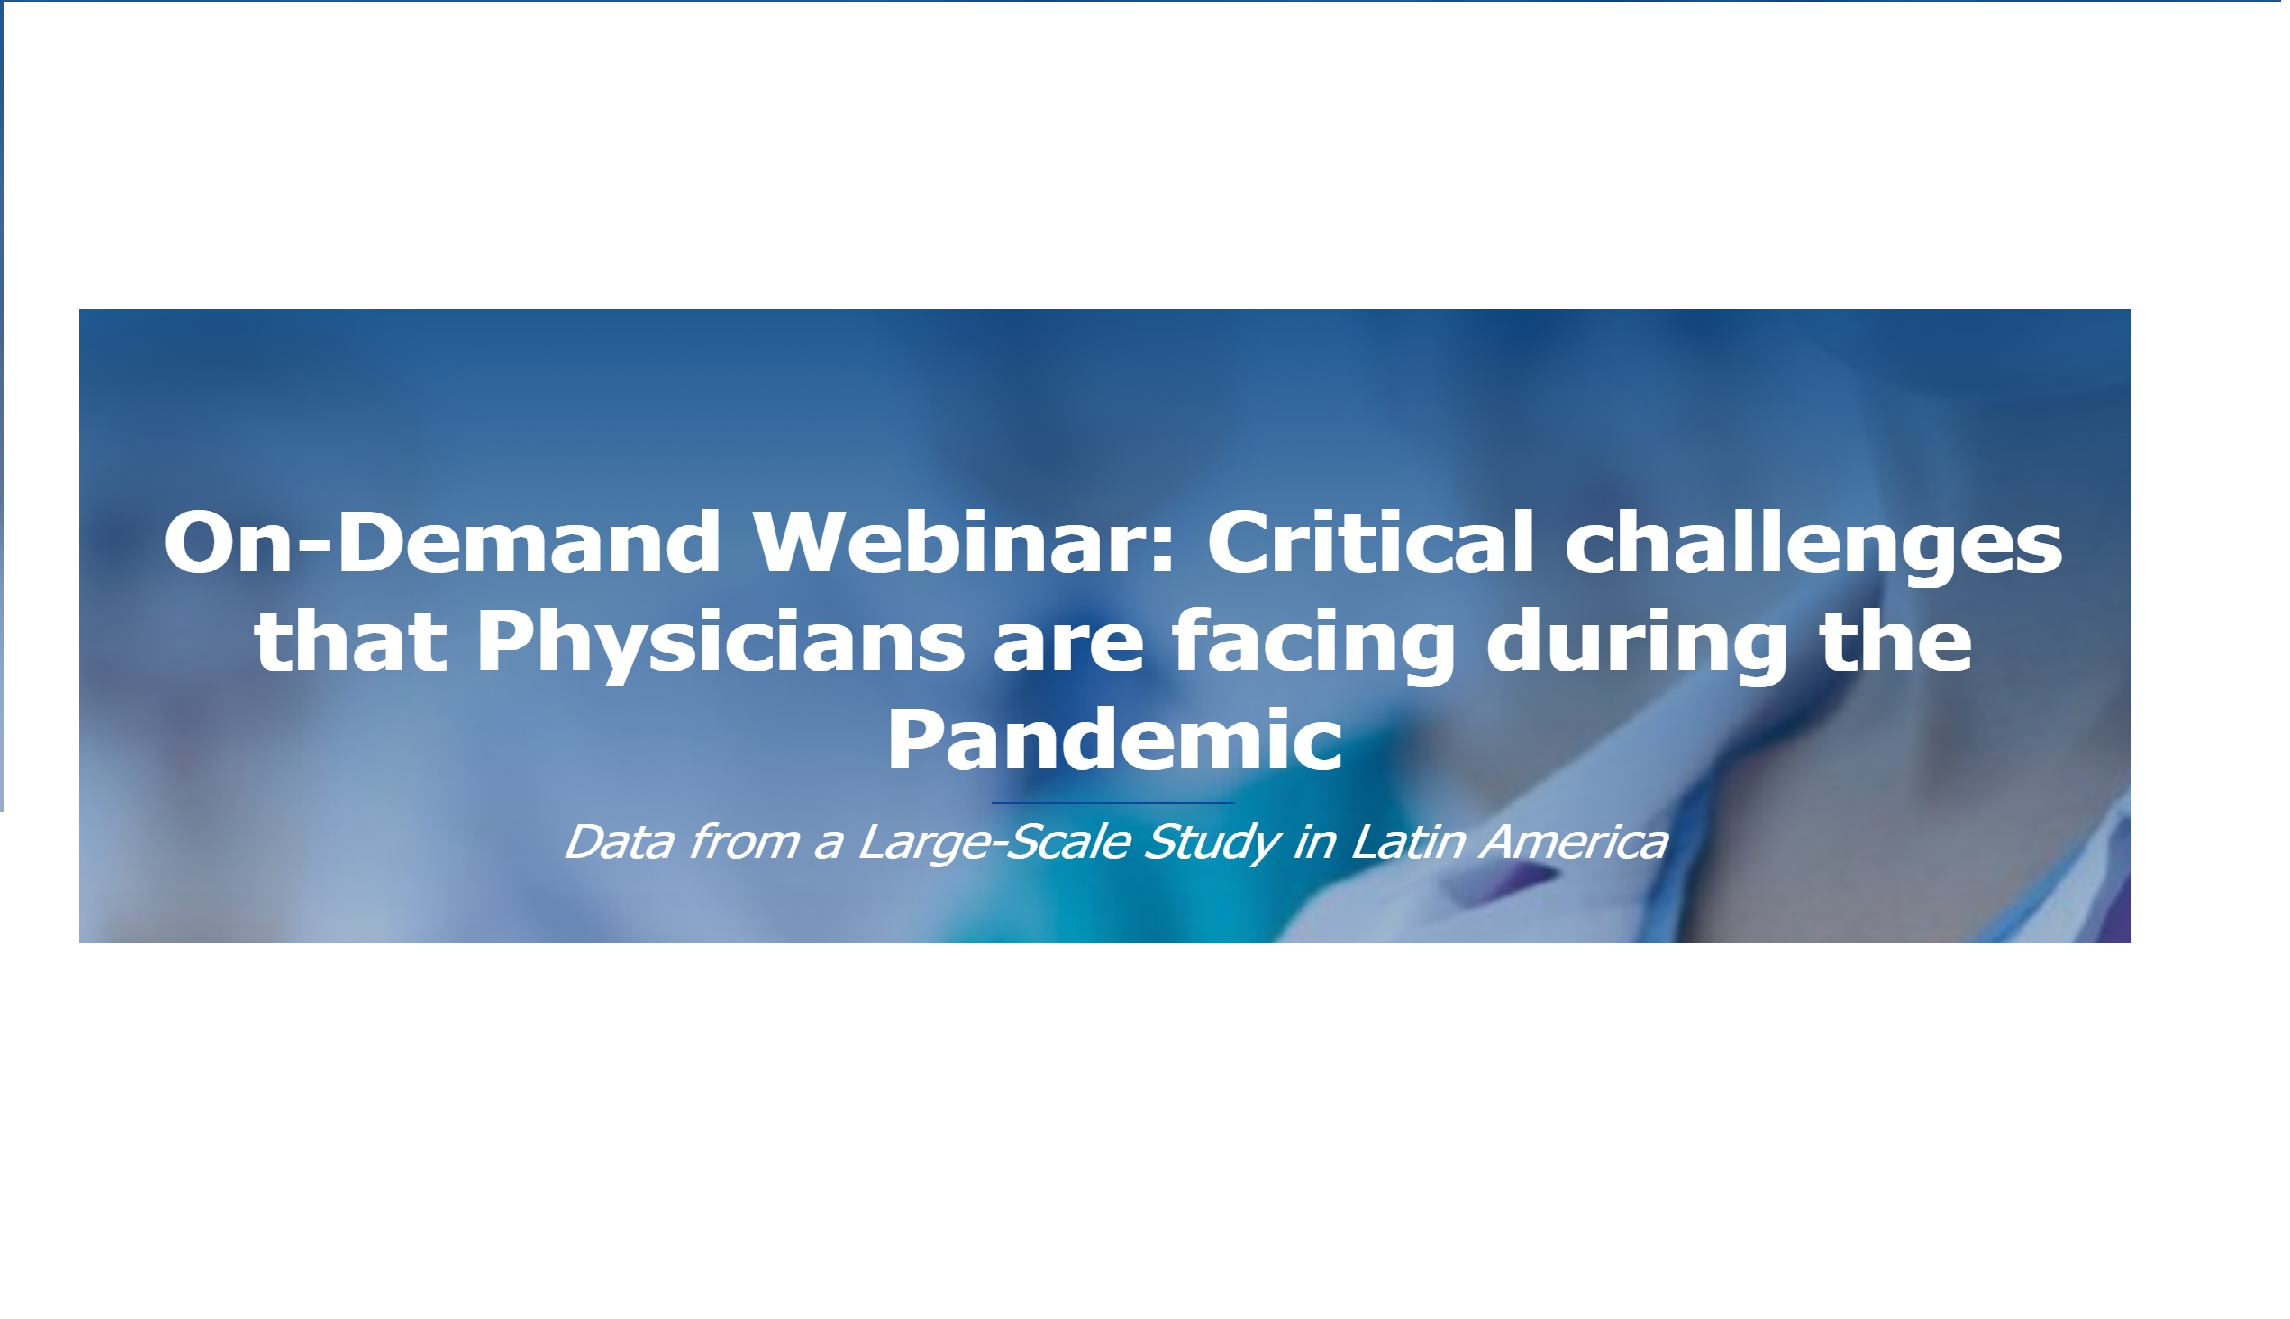 On-Demand Webinar: Critical challenges that Physicians are facing during the Pandemic